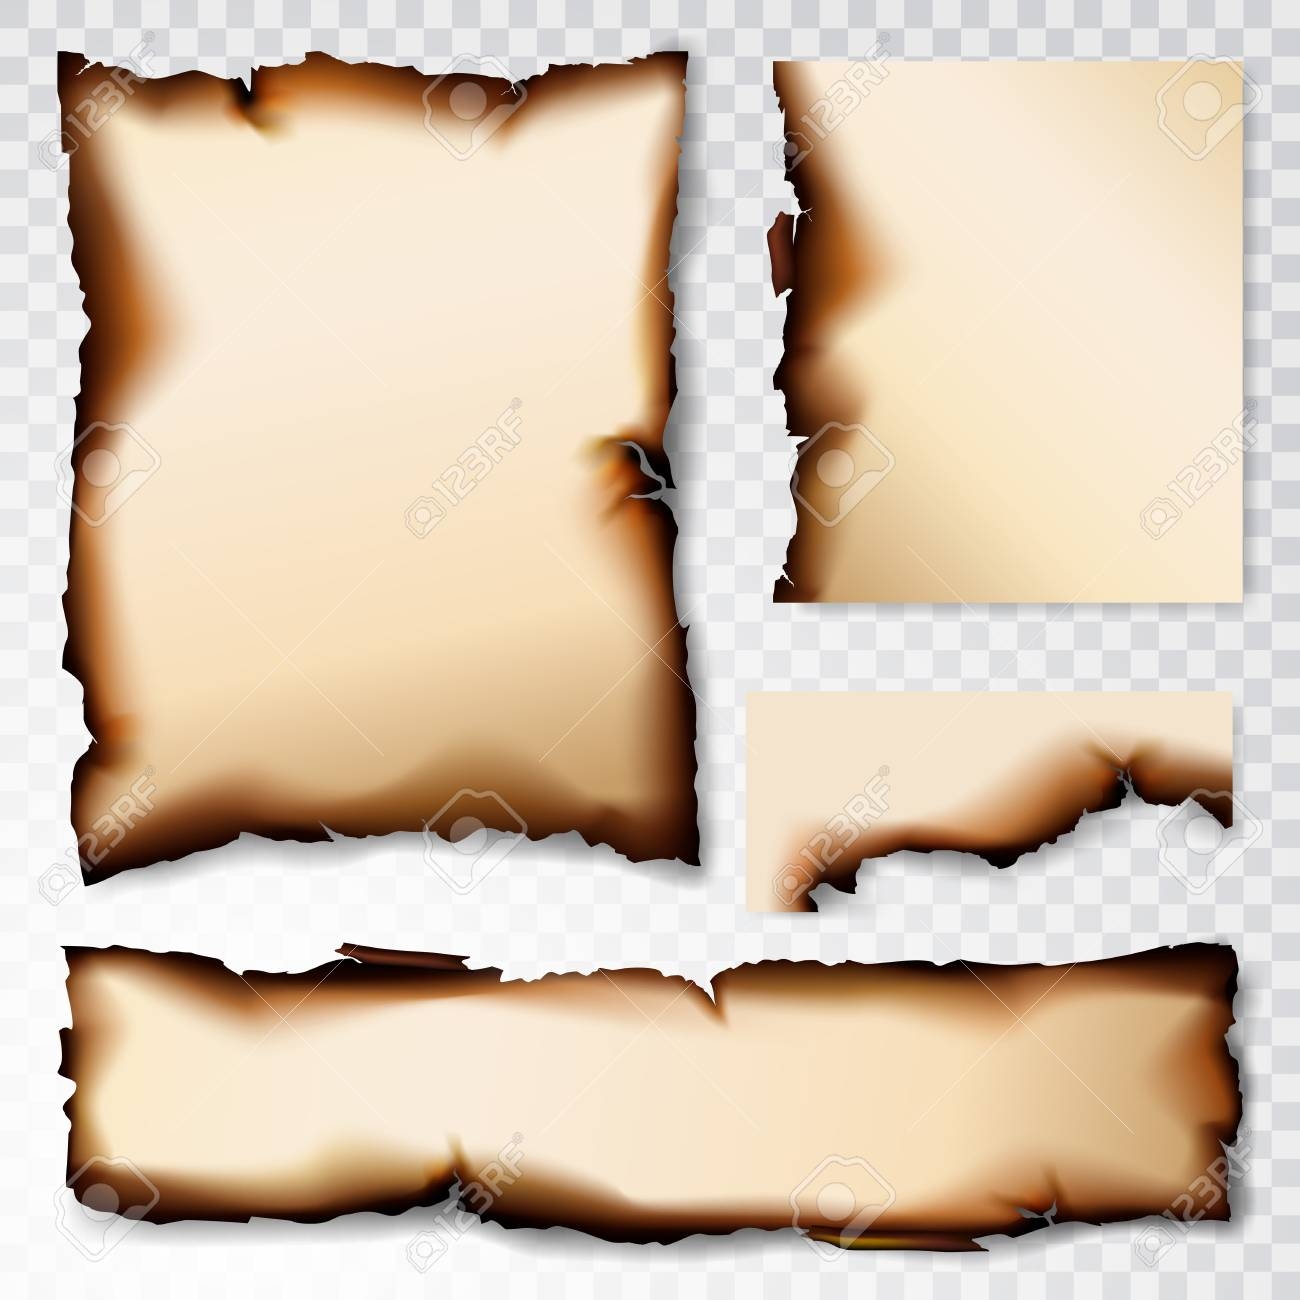 Burnt Paper scorched illustration isolated on transparent background - 106706151